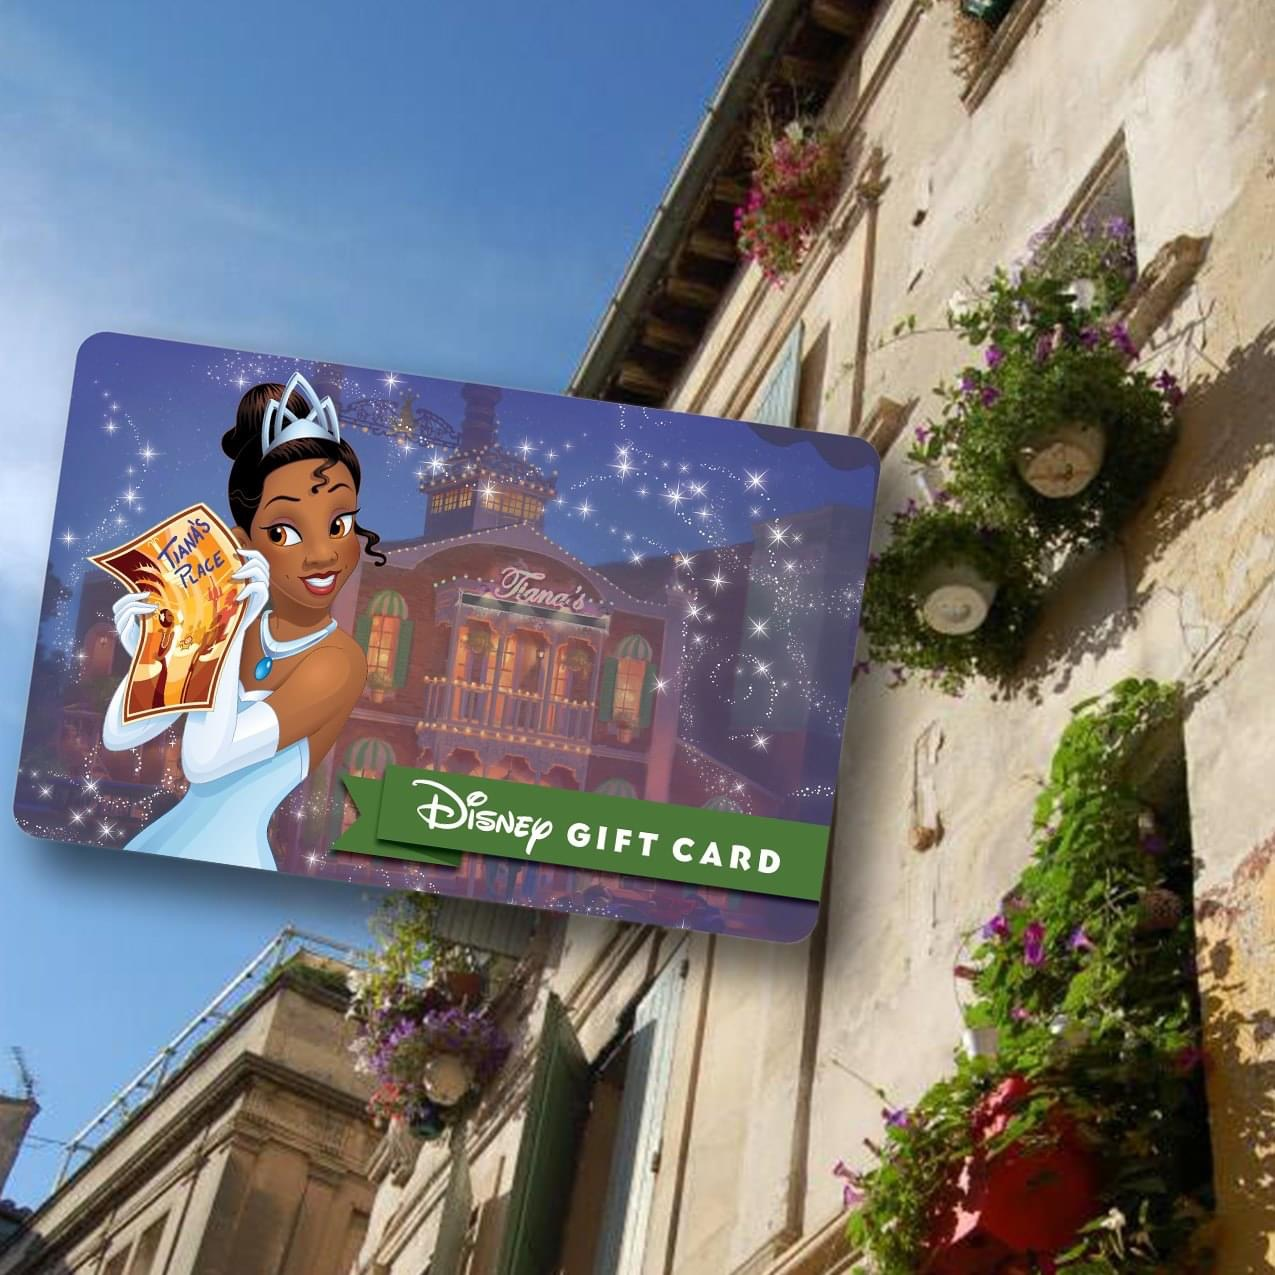 New Disney Gift Card Designs for Your Holiday Gift Giving from shopDisney! 6